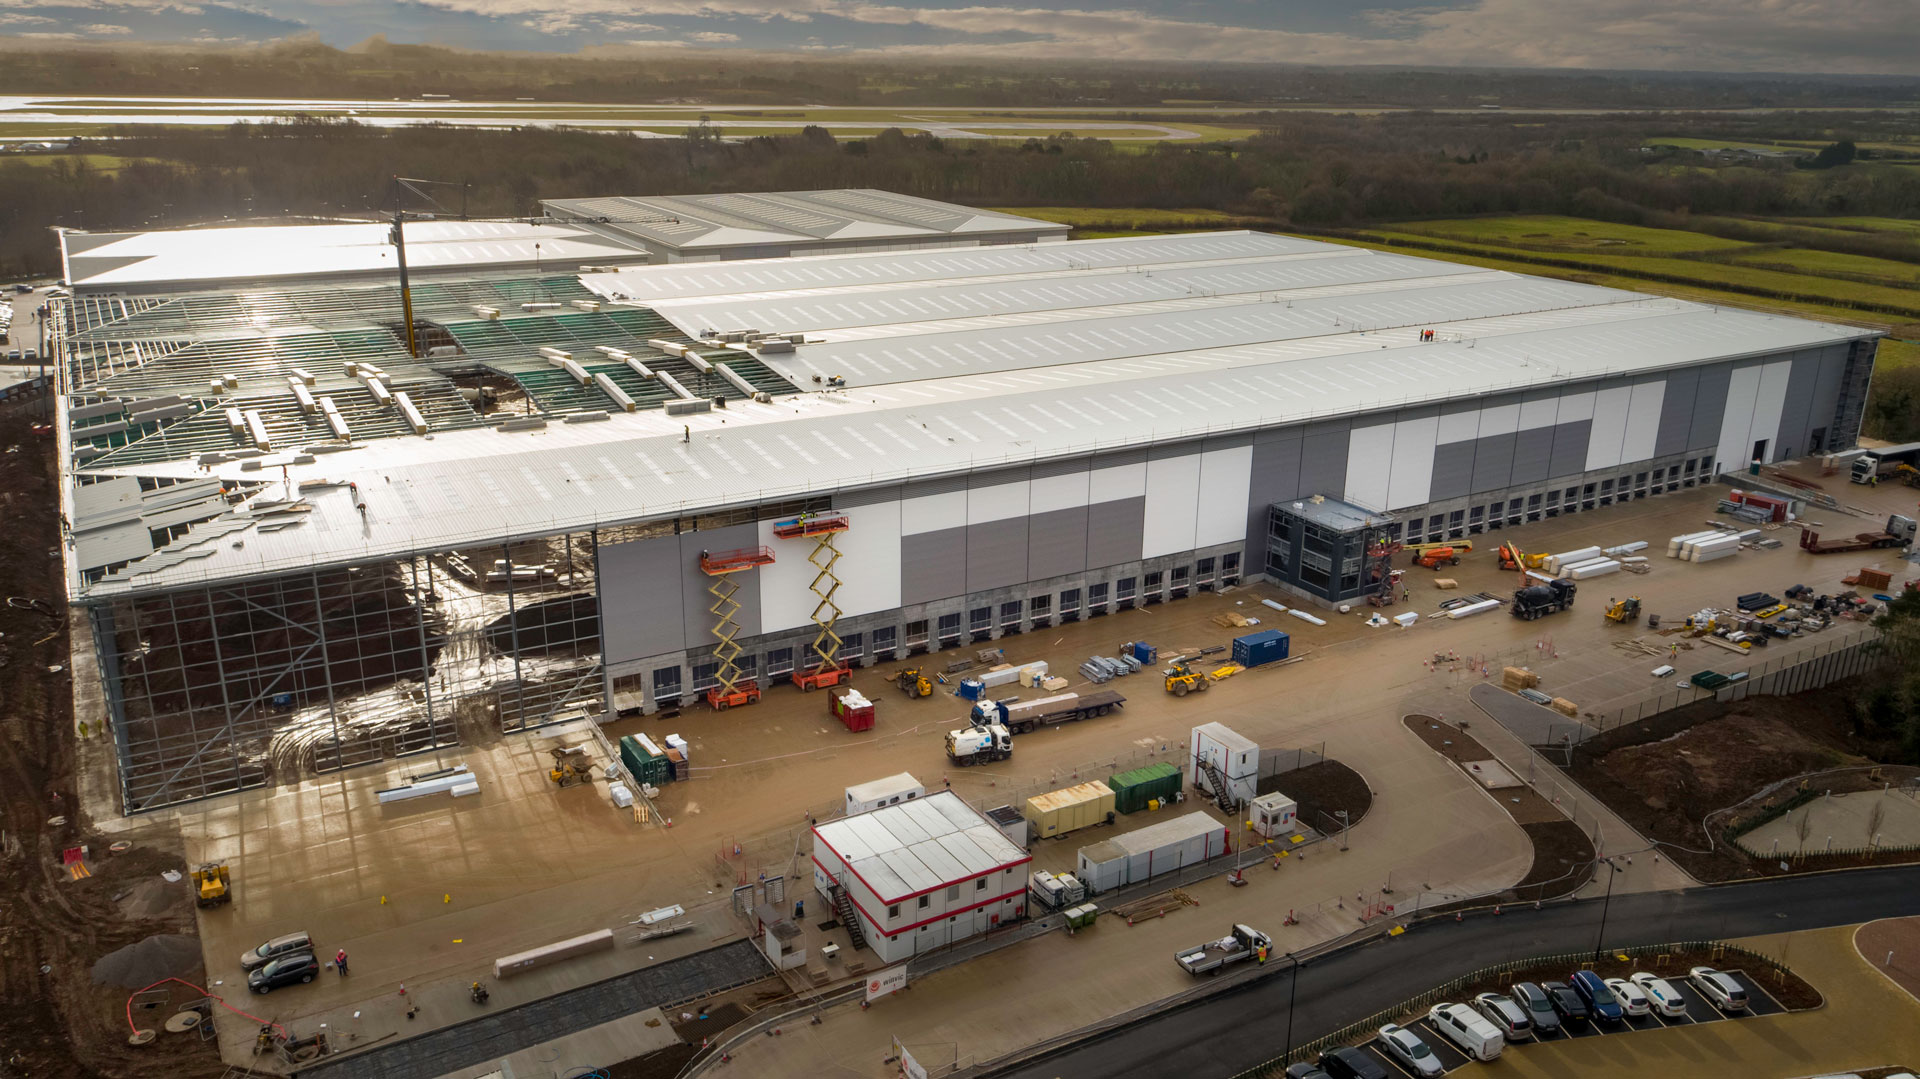 West Siphonics Systems England Scotland Siphonic Roof Drainage Specialists Design Manufacture Installation Project Management ICON 2 Manchester Airport 2 Project Gallery